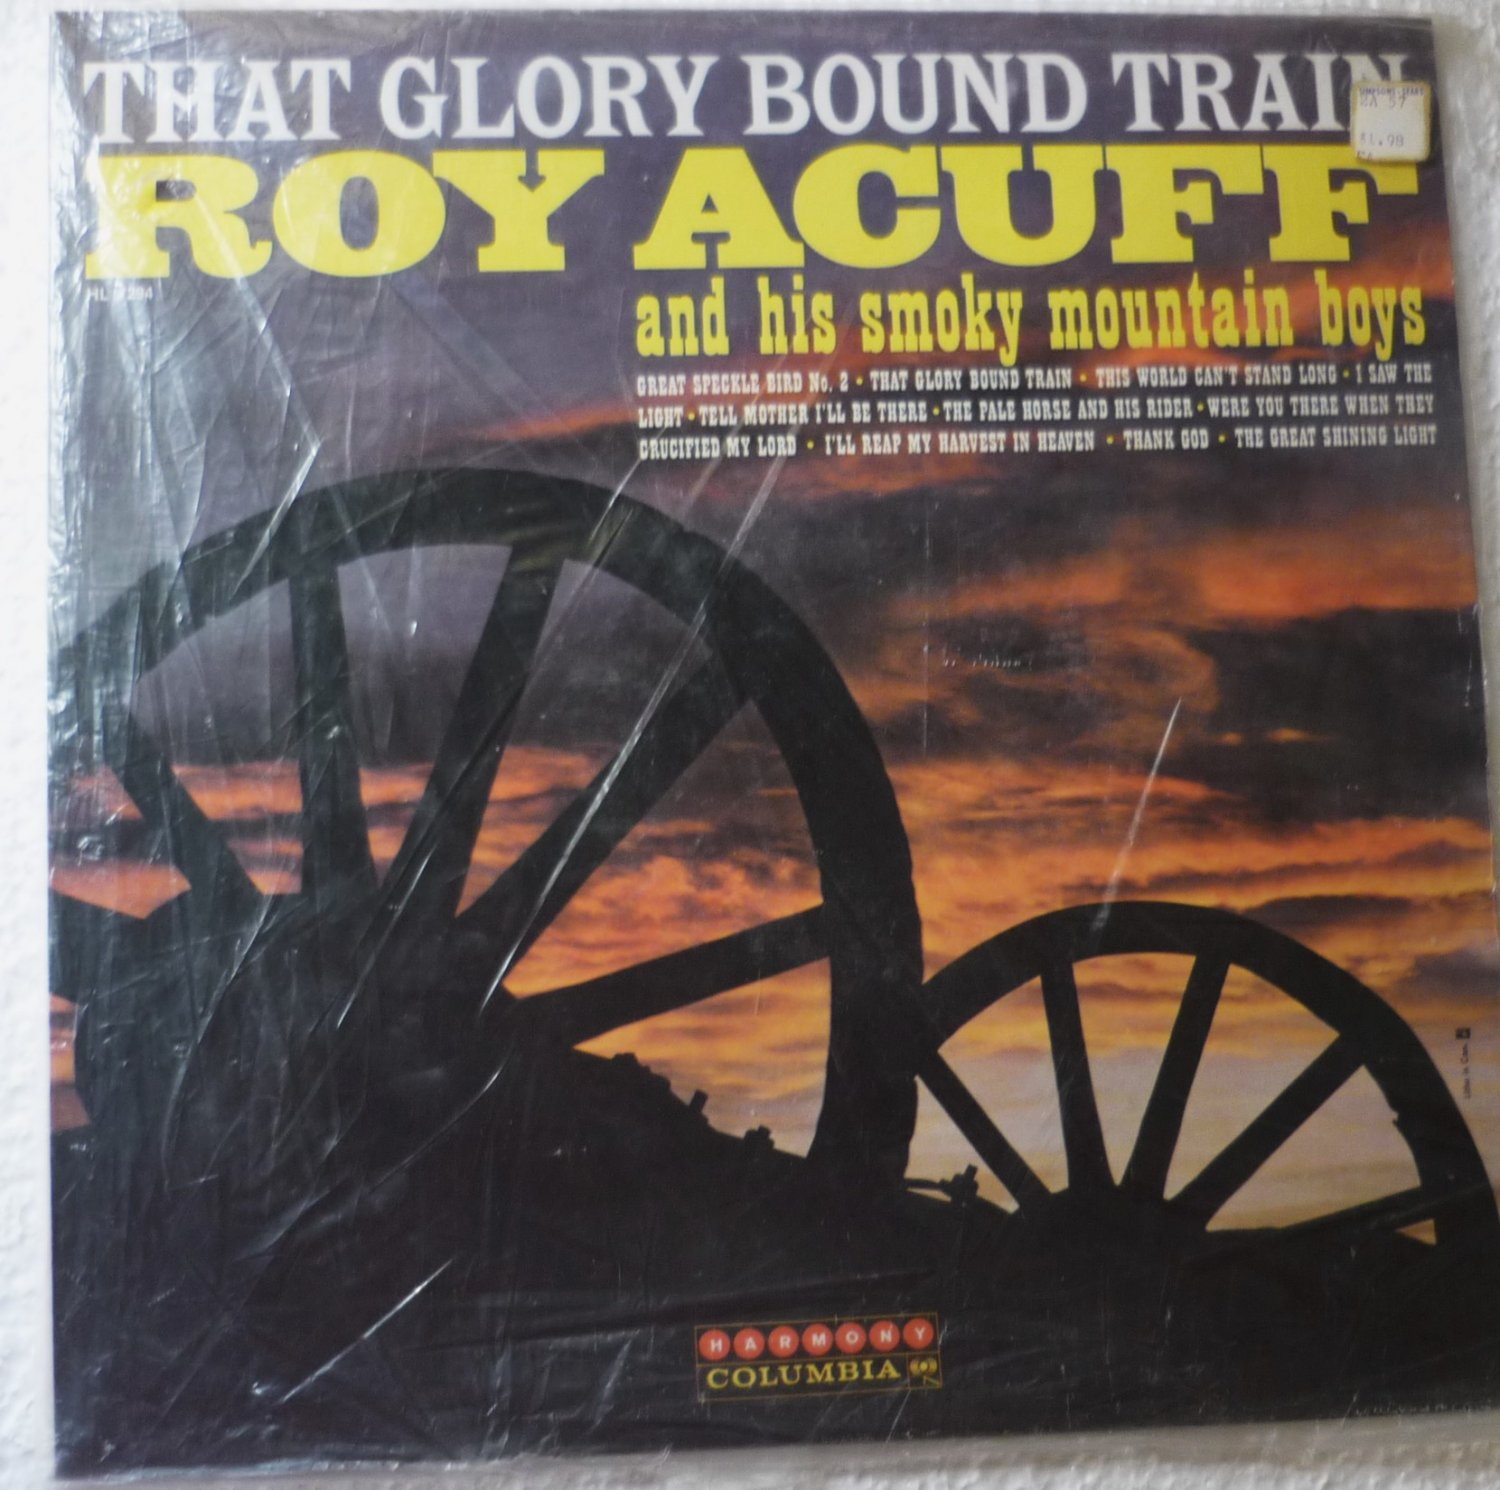 That Glory Bound Train by Roy Acuff 1961 lp hl 7294 One Owner